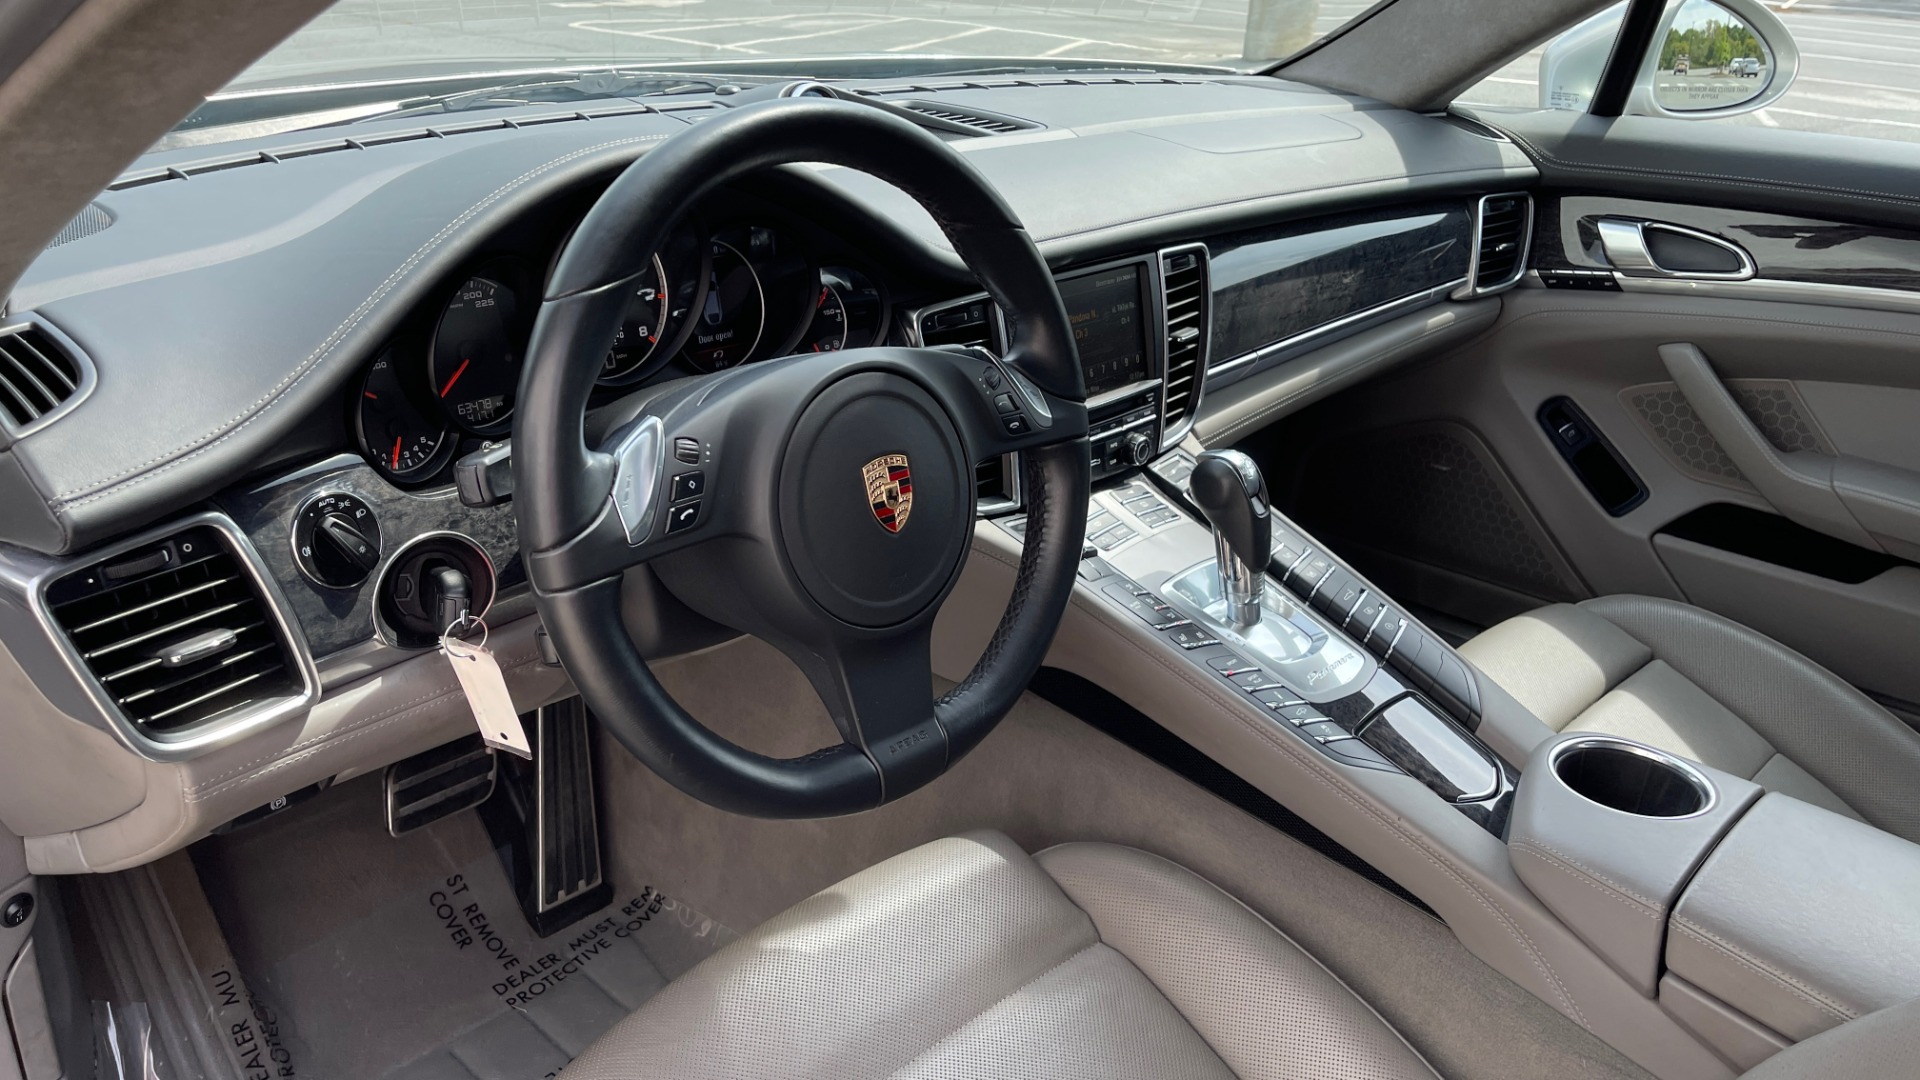 Used 2010 Porsche PANAMERA 4DR HB TURBO / SPORT CHRONO / BOSE / AUTO CLIMATE CONTROL for sale $42,124 at Formula Imports in Charlotte NC 28227 31